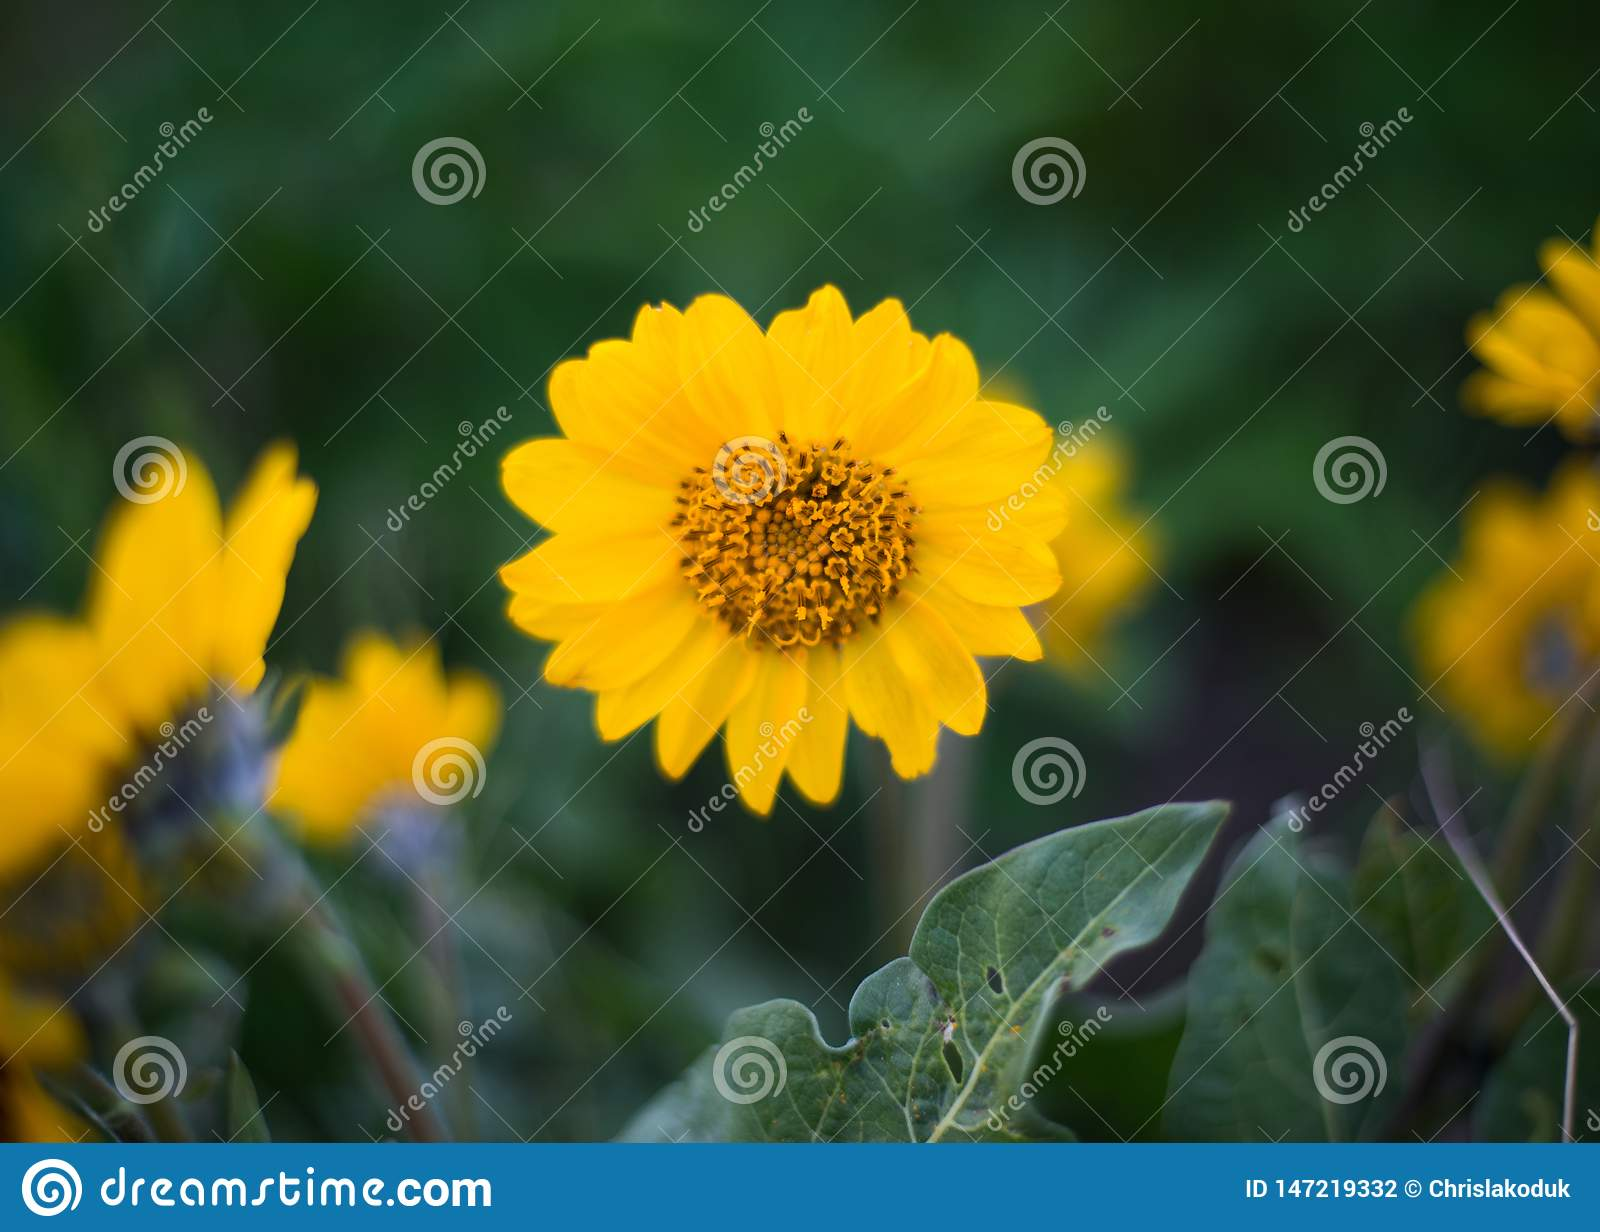 Yellow Wild Flower With Green Foliage